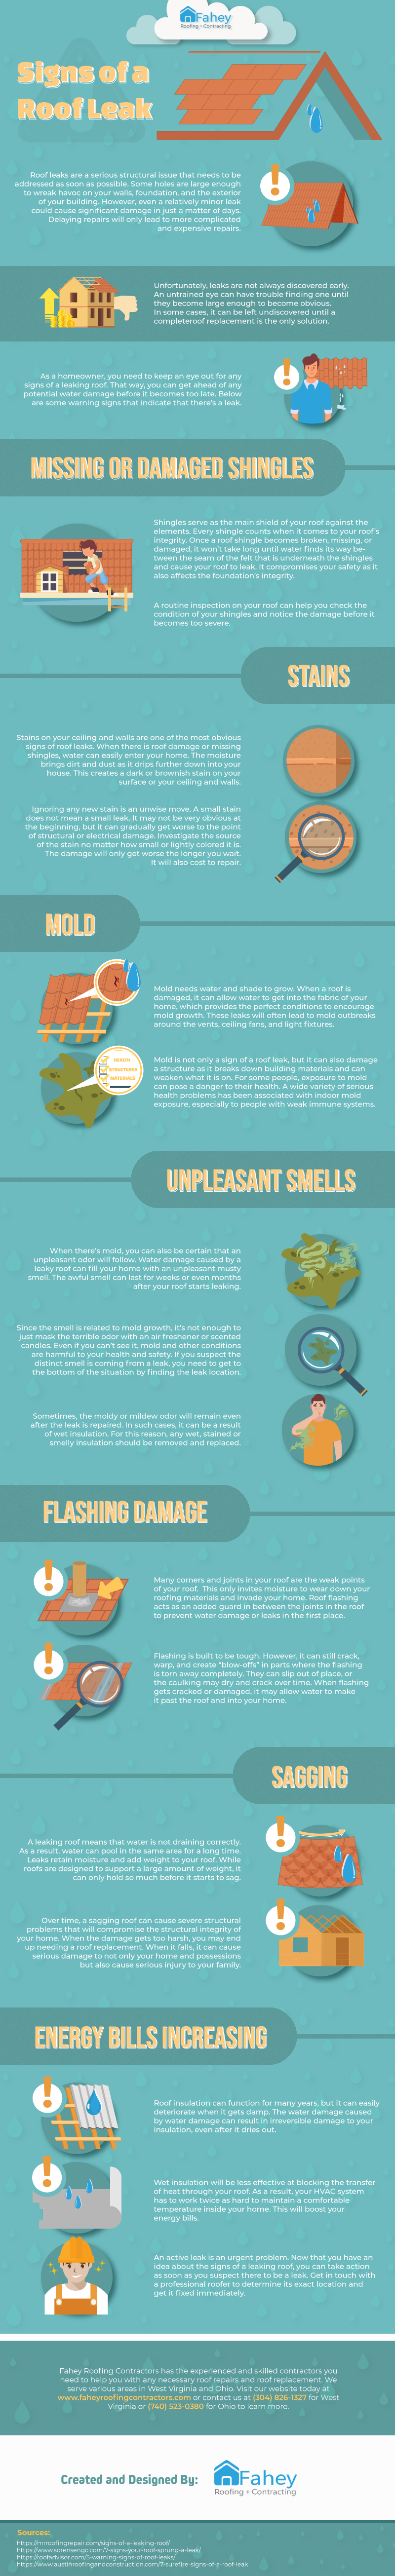 Signs of a Roof Leak Infographic